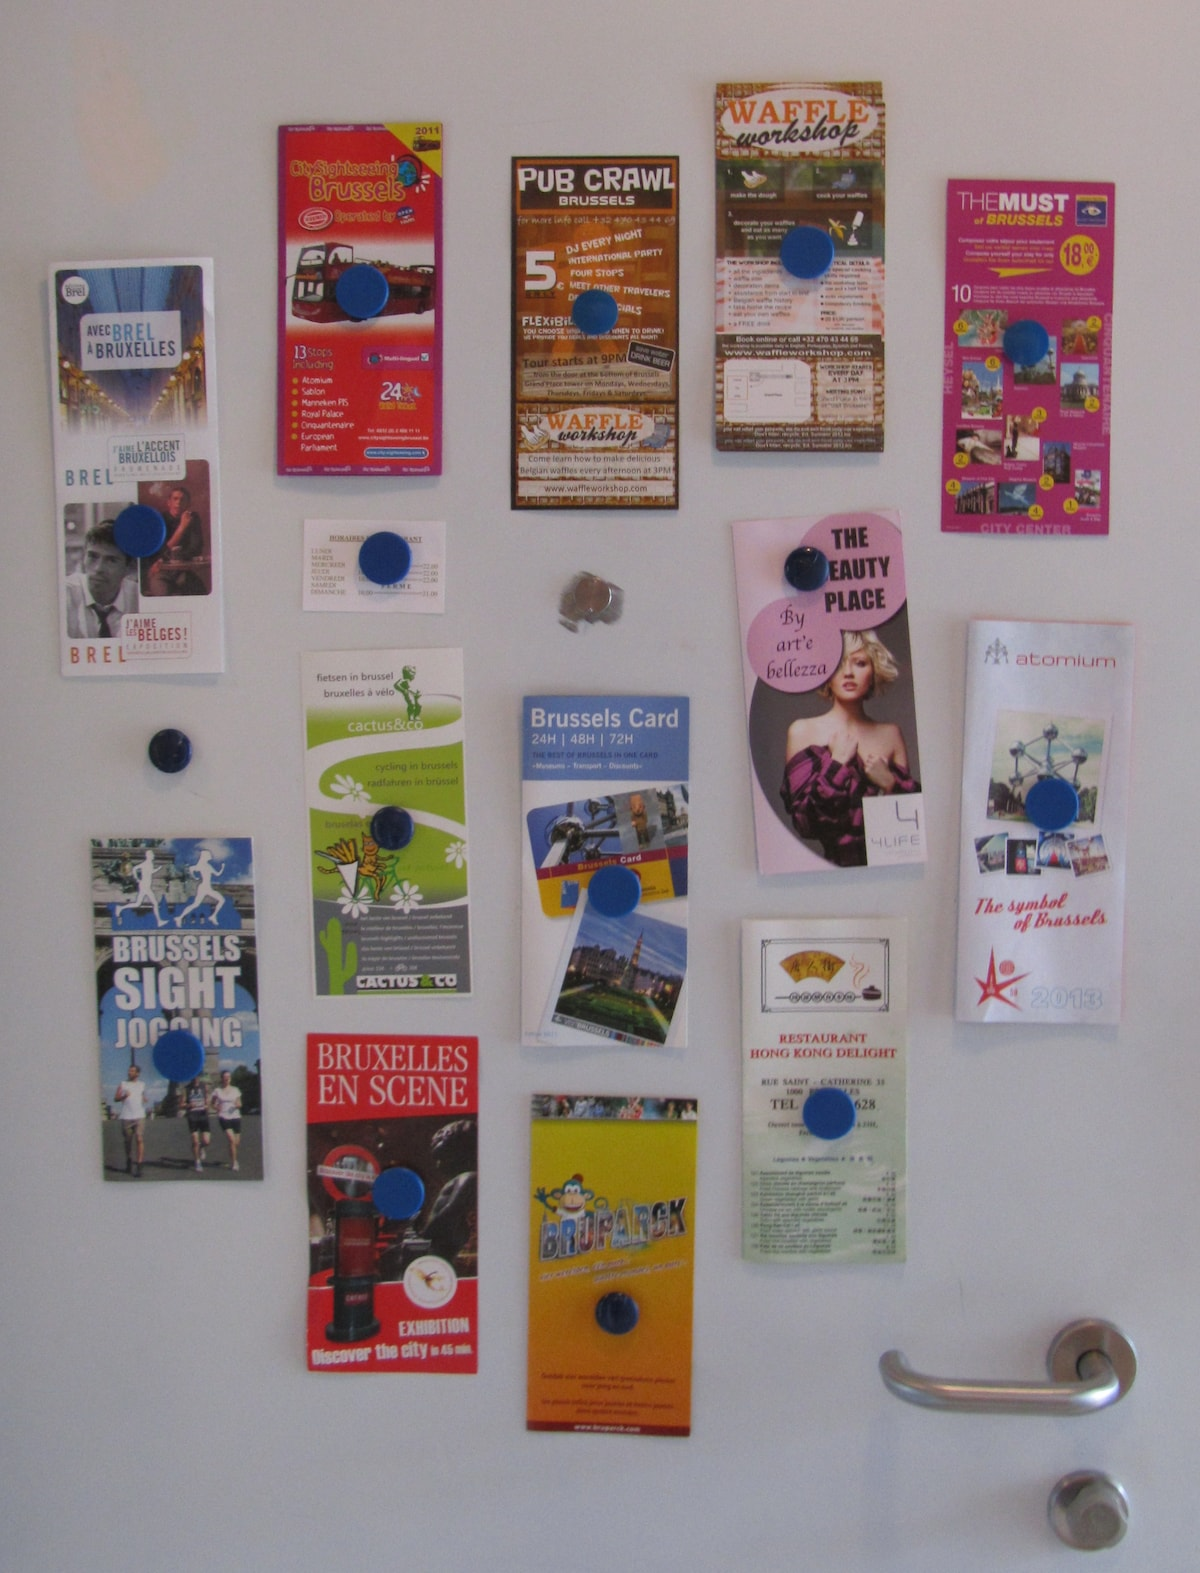 Lots of leaflets and shopping caddy cart (not captured here) at your disposal